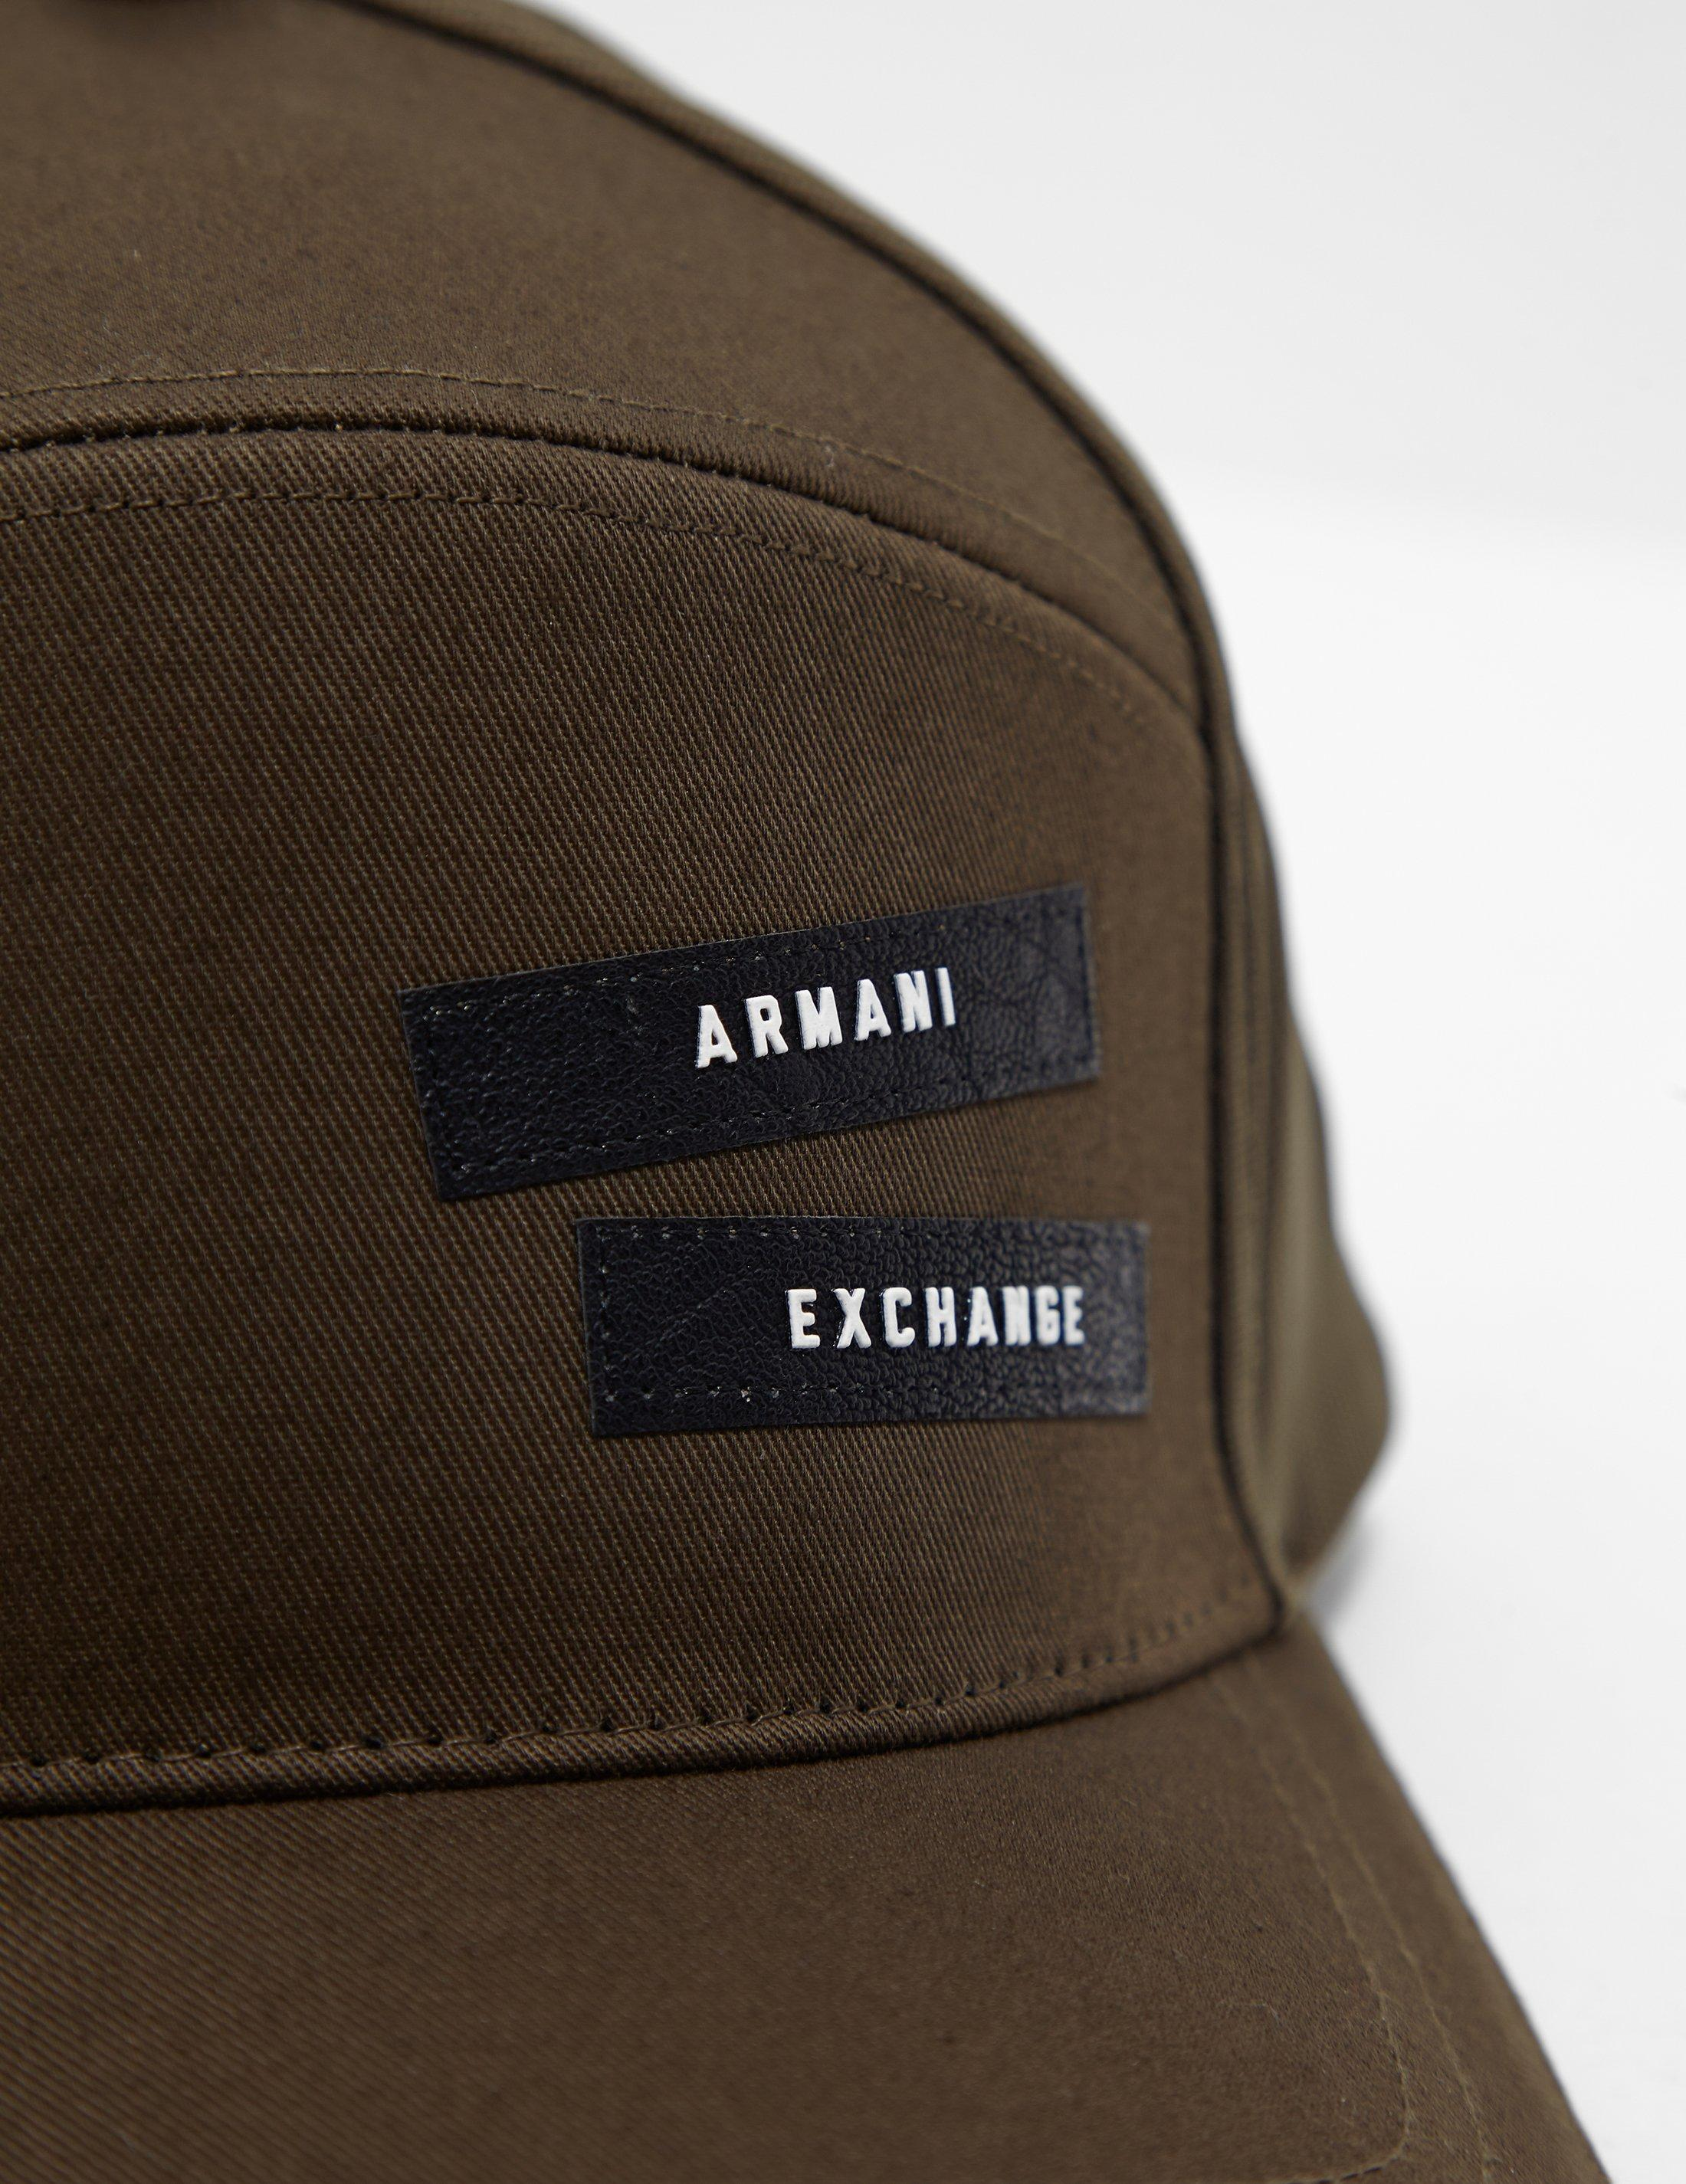 ee64a1b7 Lyst - Armani Exchange 5 Panel Cap Green in Green for Men